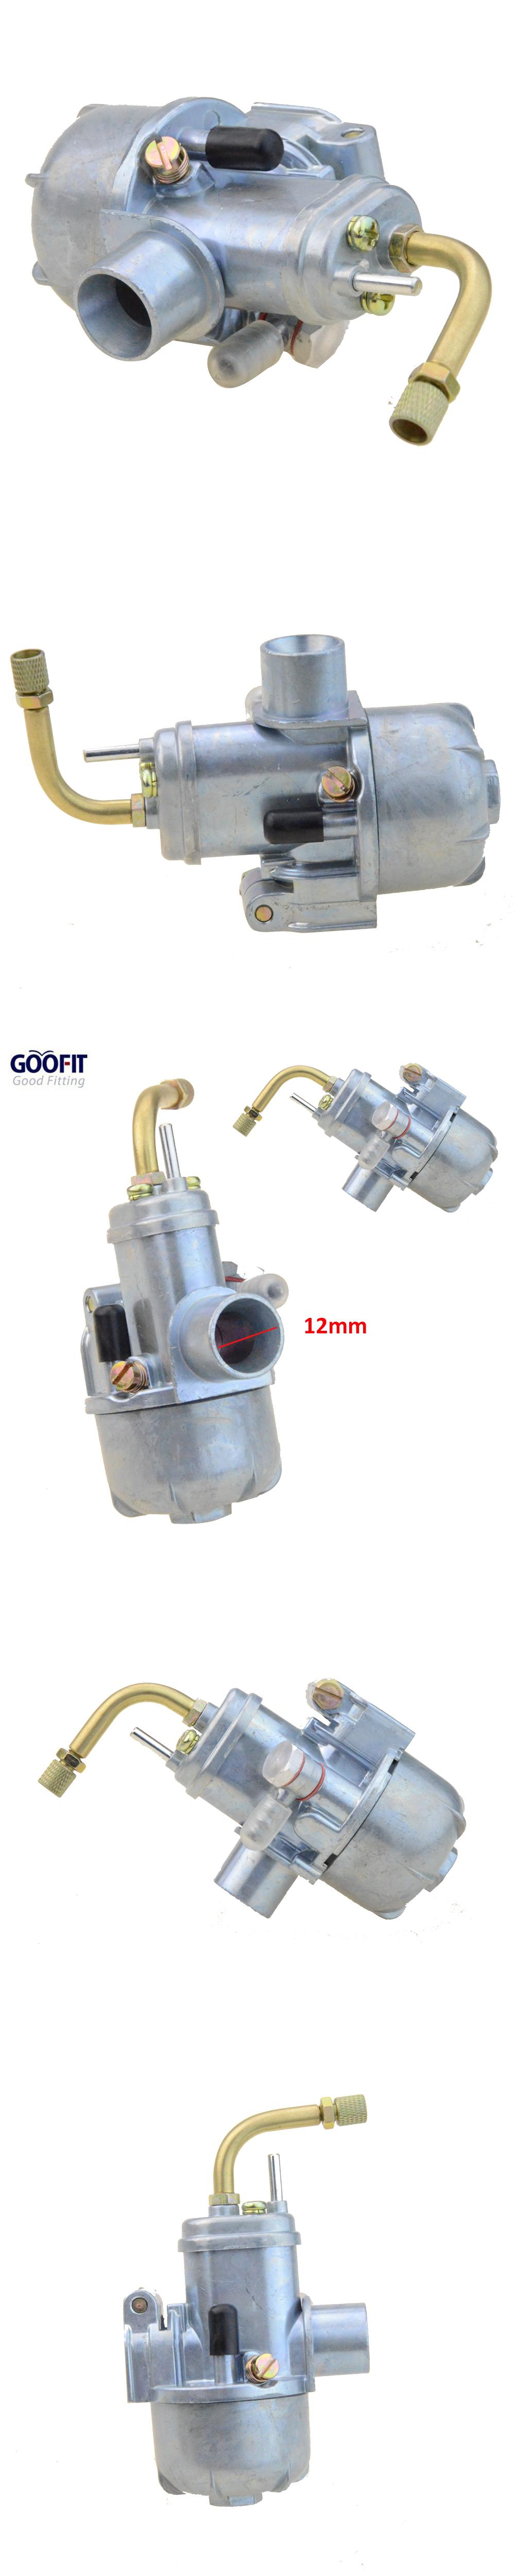 Goofit 12mm Carburetor Puch Moped Bing Style Carb Stock Maxi Sport Luxe Newport Cobra Carburettor N090 114 Puch Moped Motorcycle Accessories Puch